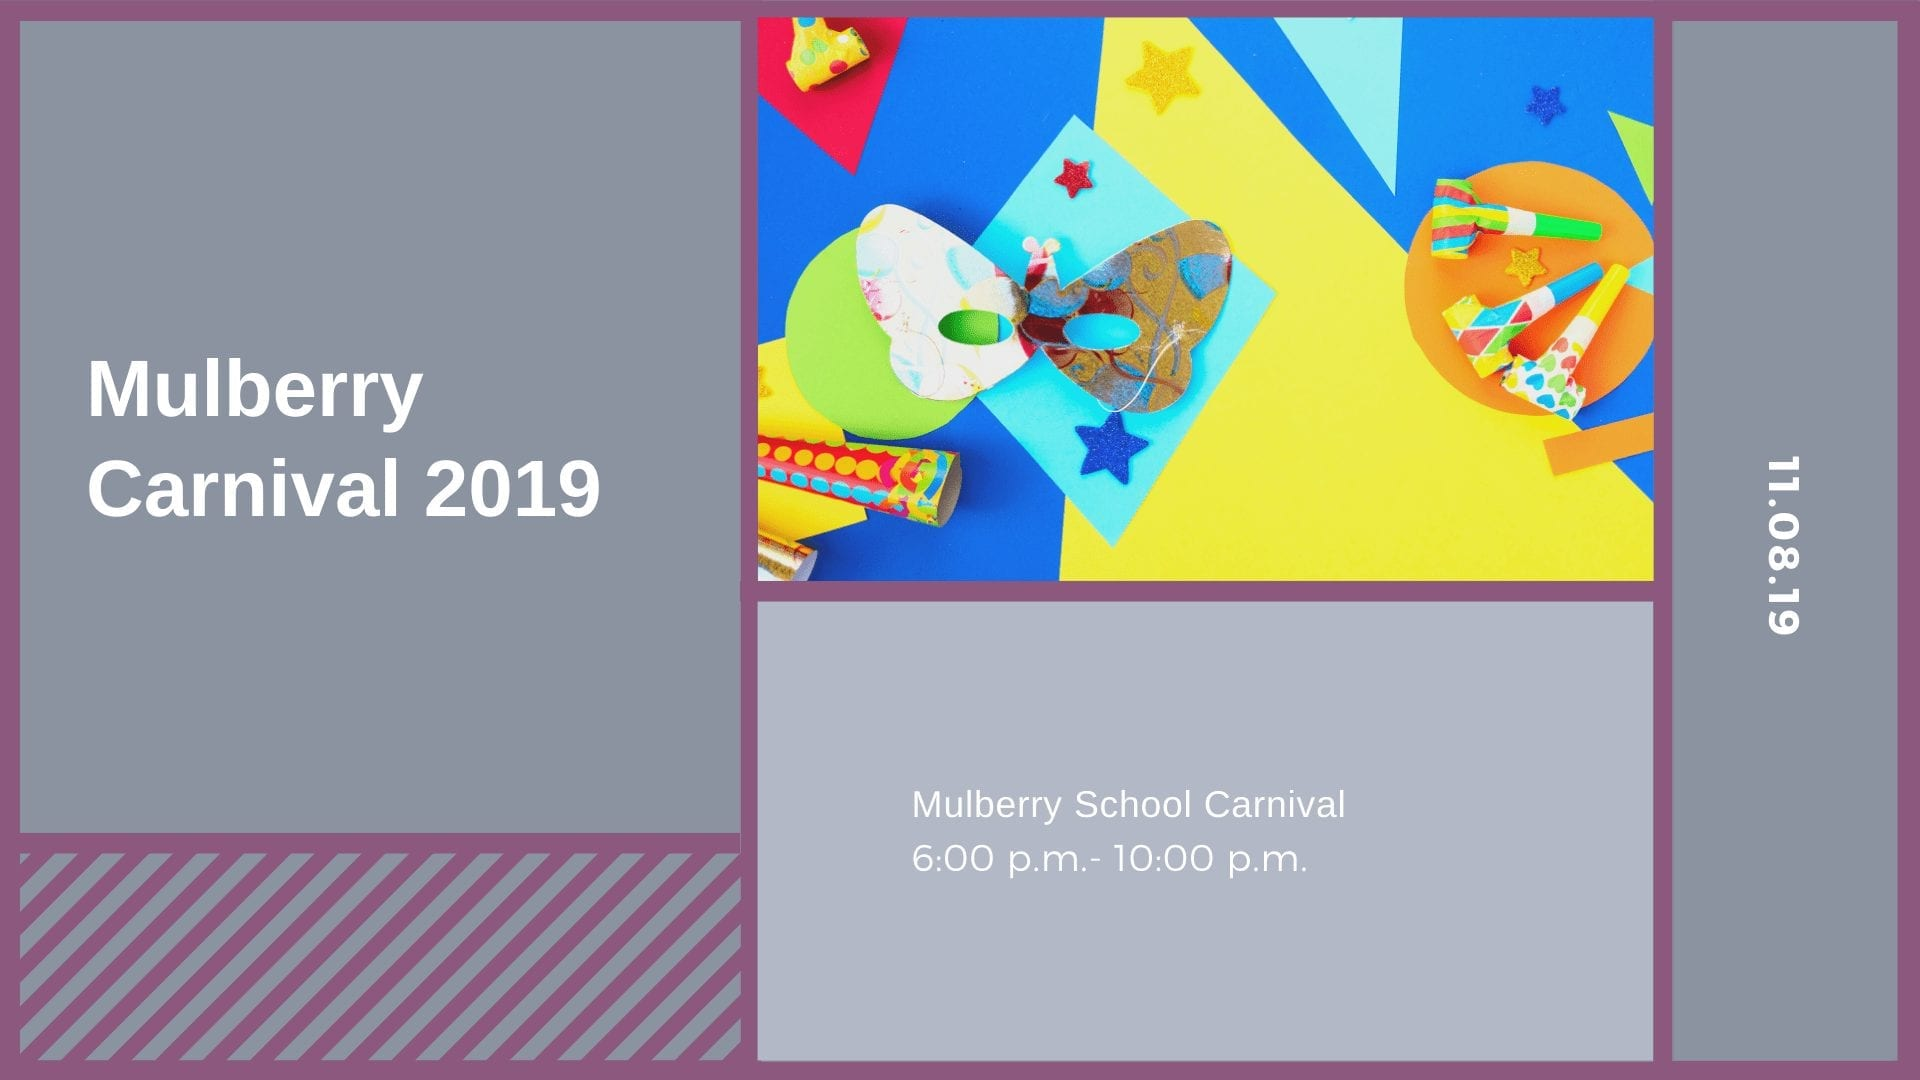 Mulberry Carnival 2019